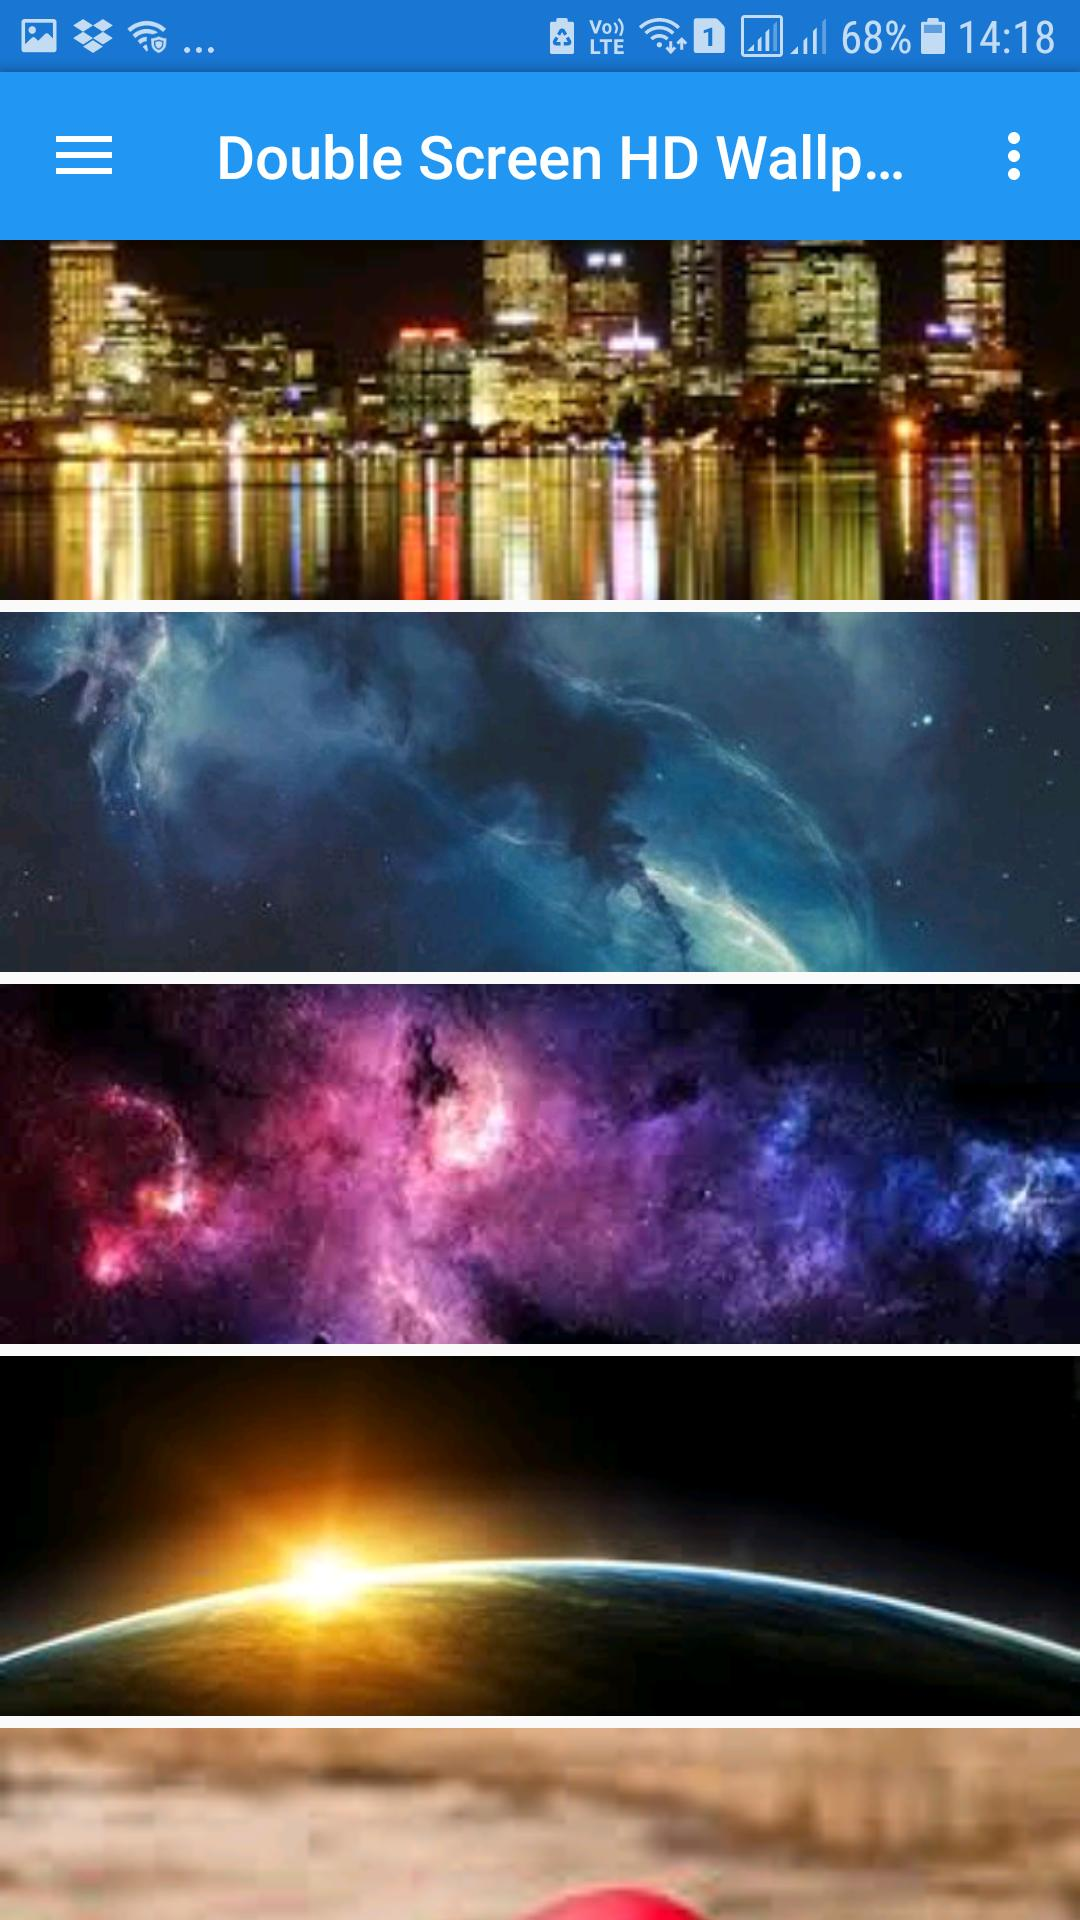 Double Screen Wallpaper Hd For Android Apk Download